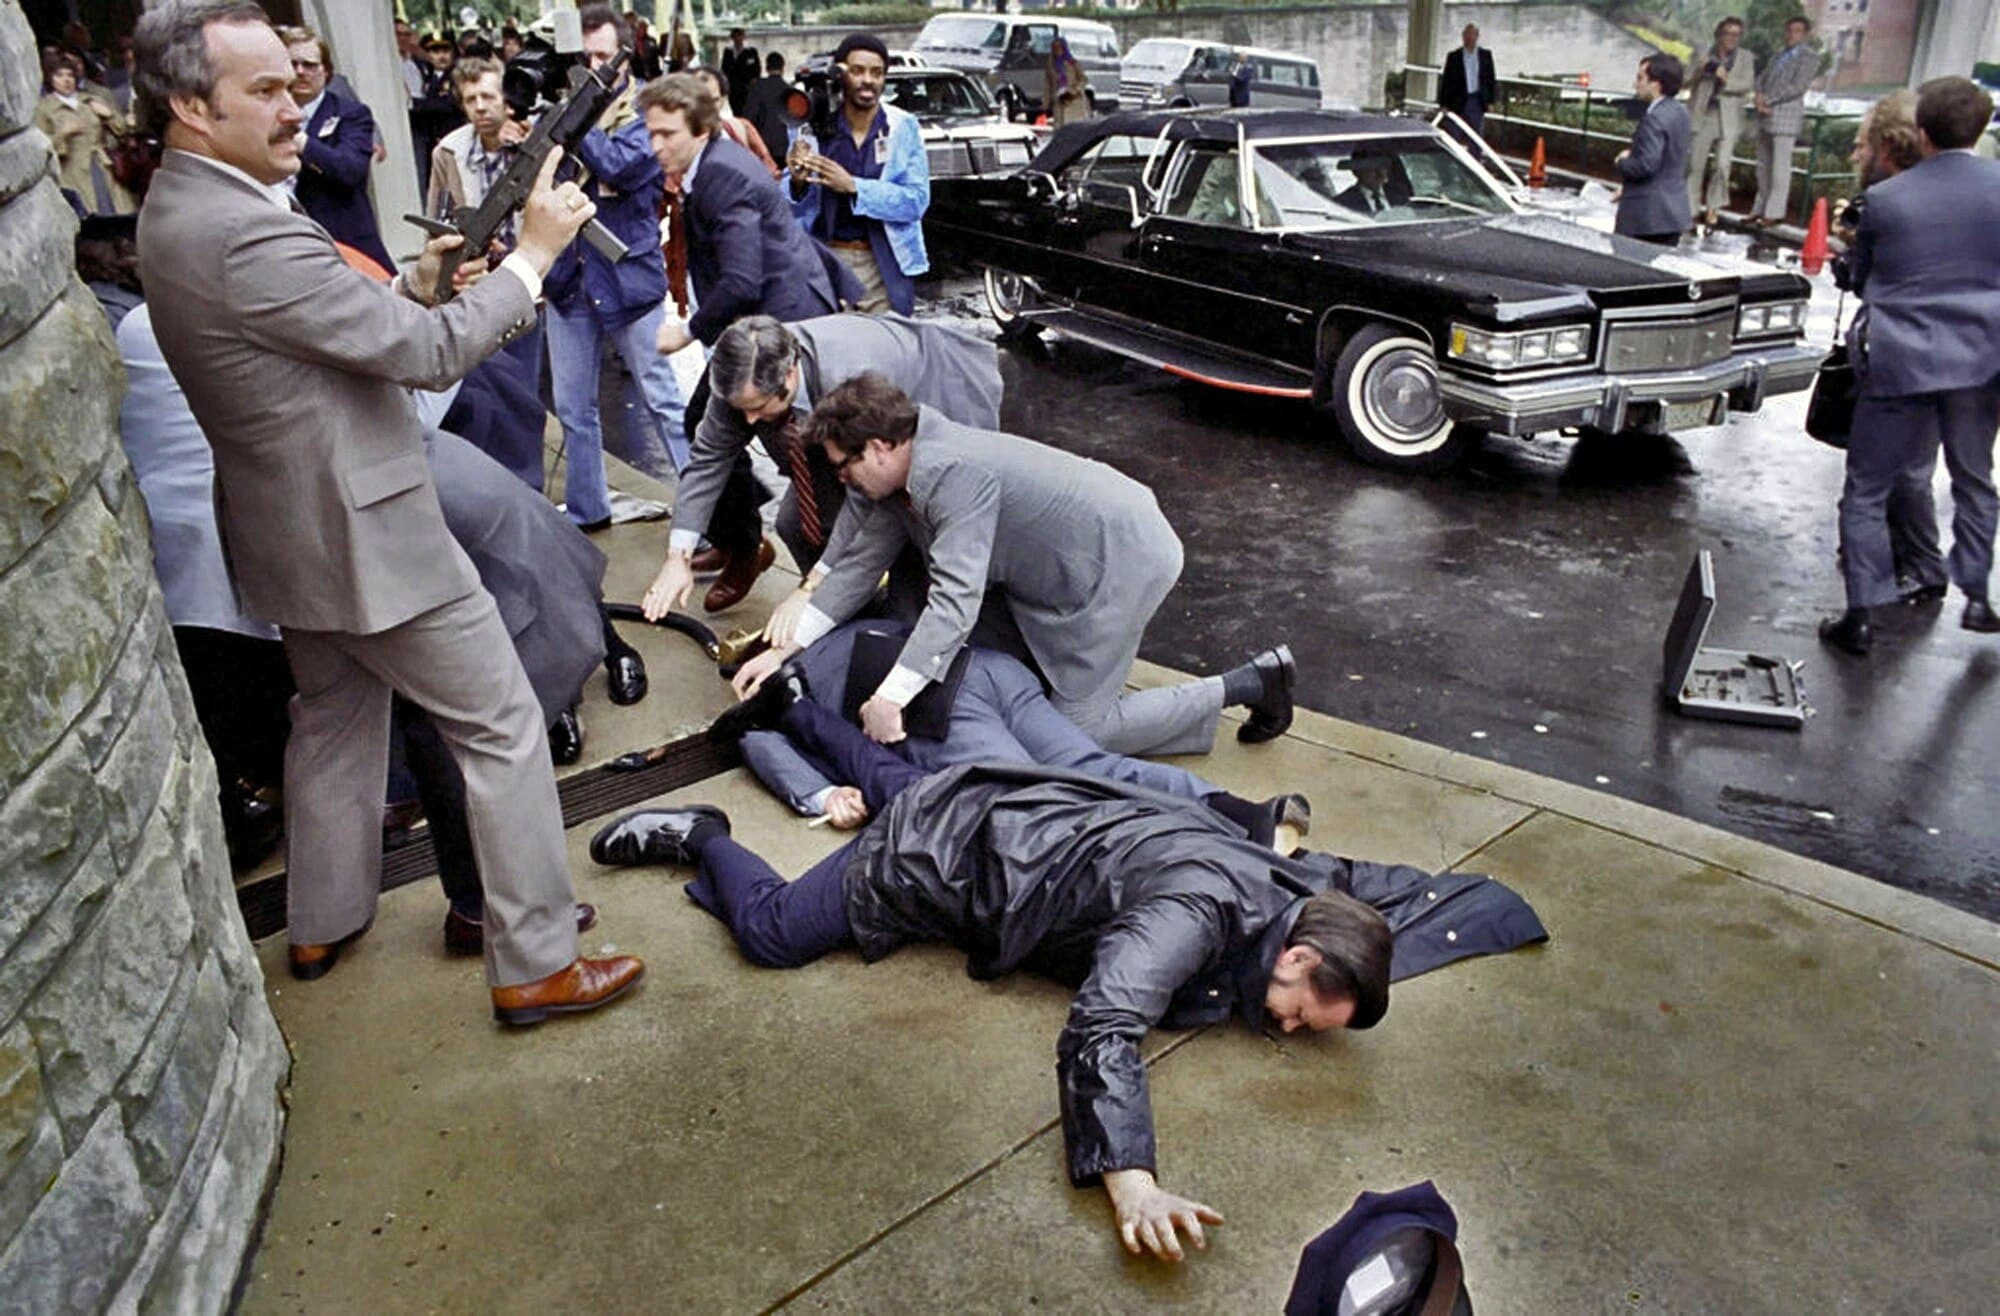 The scene after a failed assassination attempt on Ronald Reagan unfolded outside the Washington Hilton Hotel on March 30, 1981. (Photo: Ronald Reagan Library)